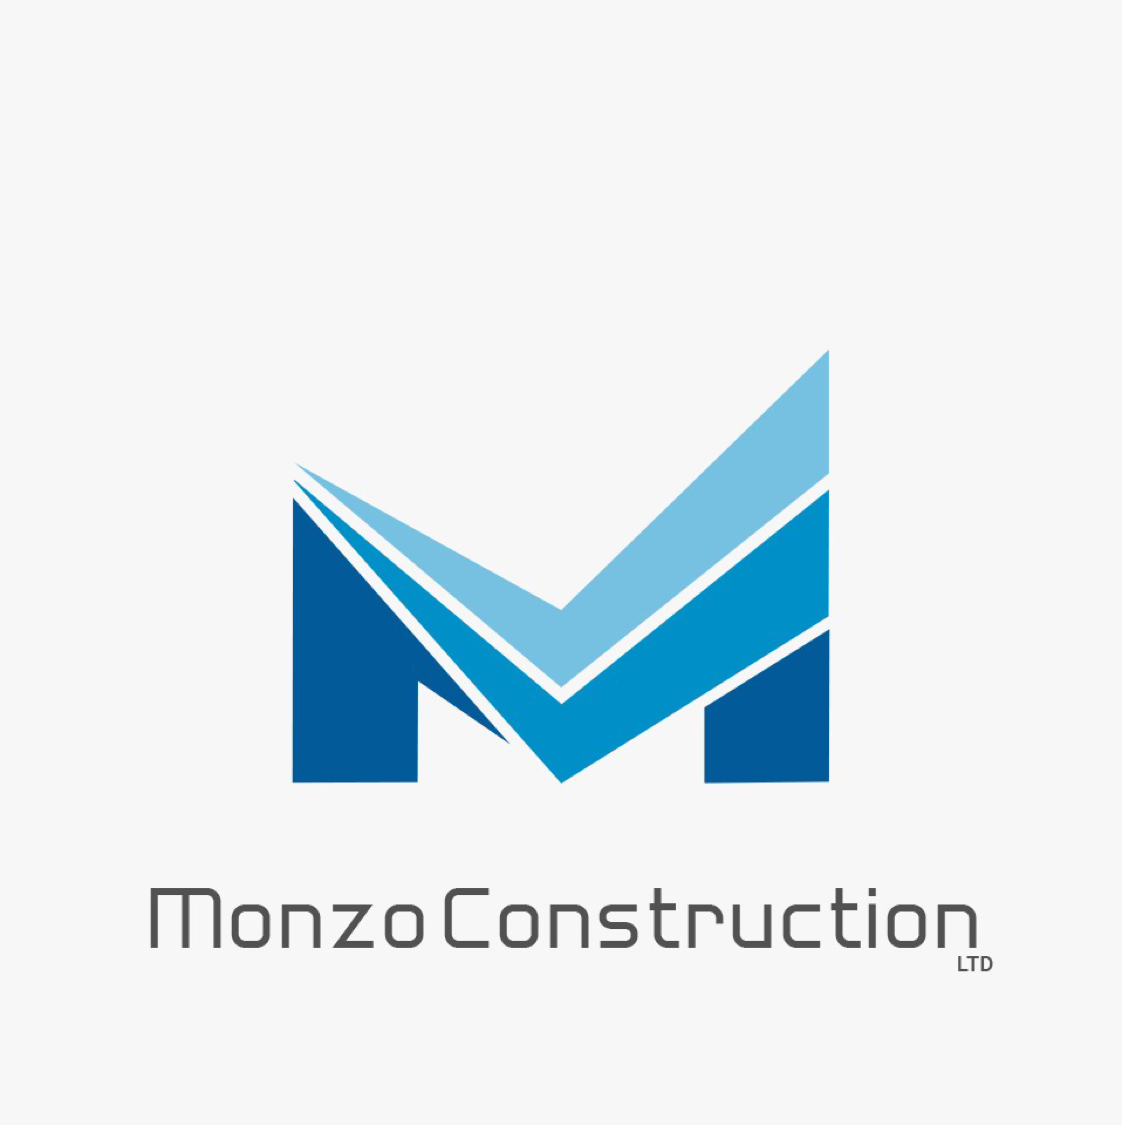 Monzo Construction